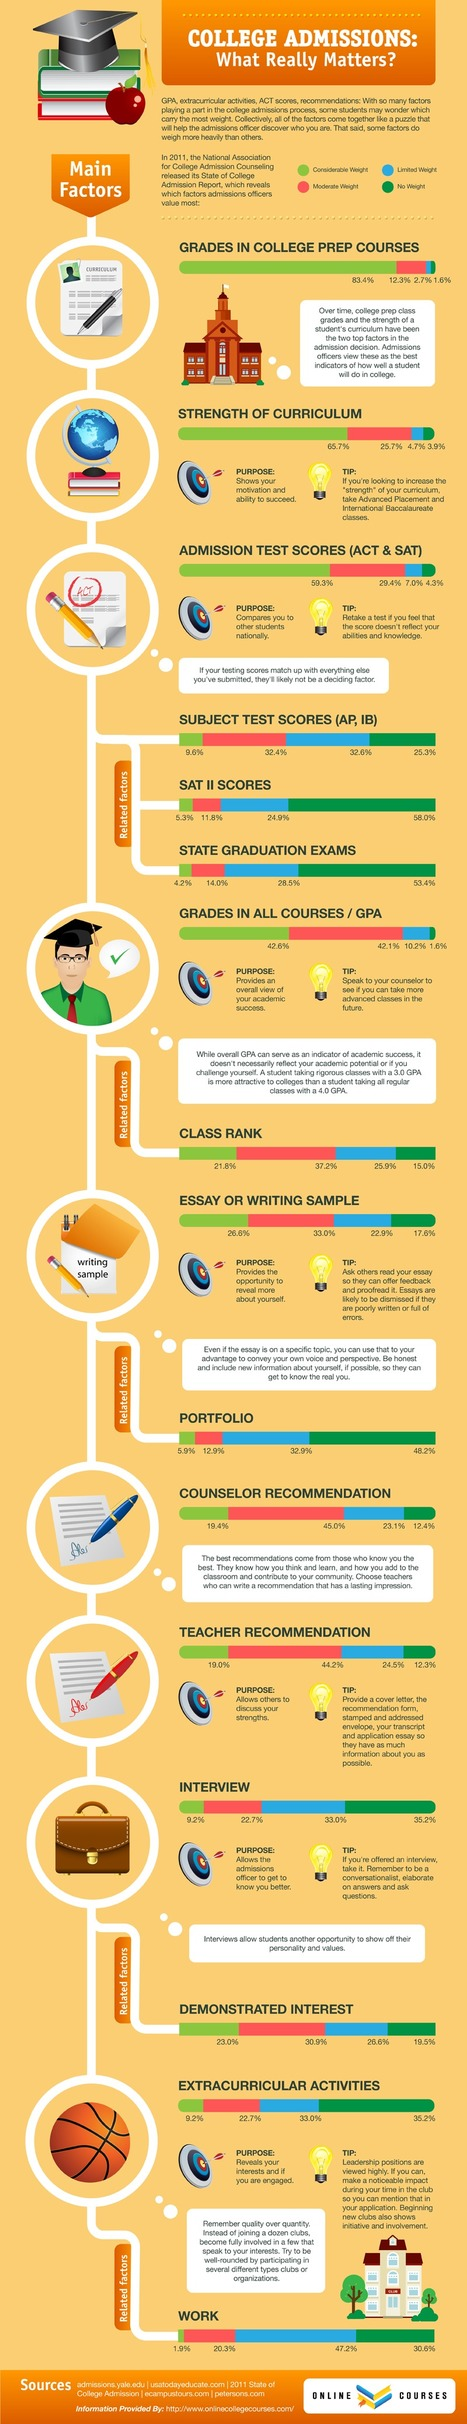 Understanding College Admissions: An Infographic   College counseling   Scoop.it